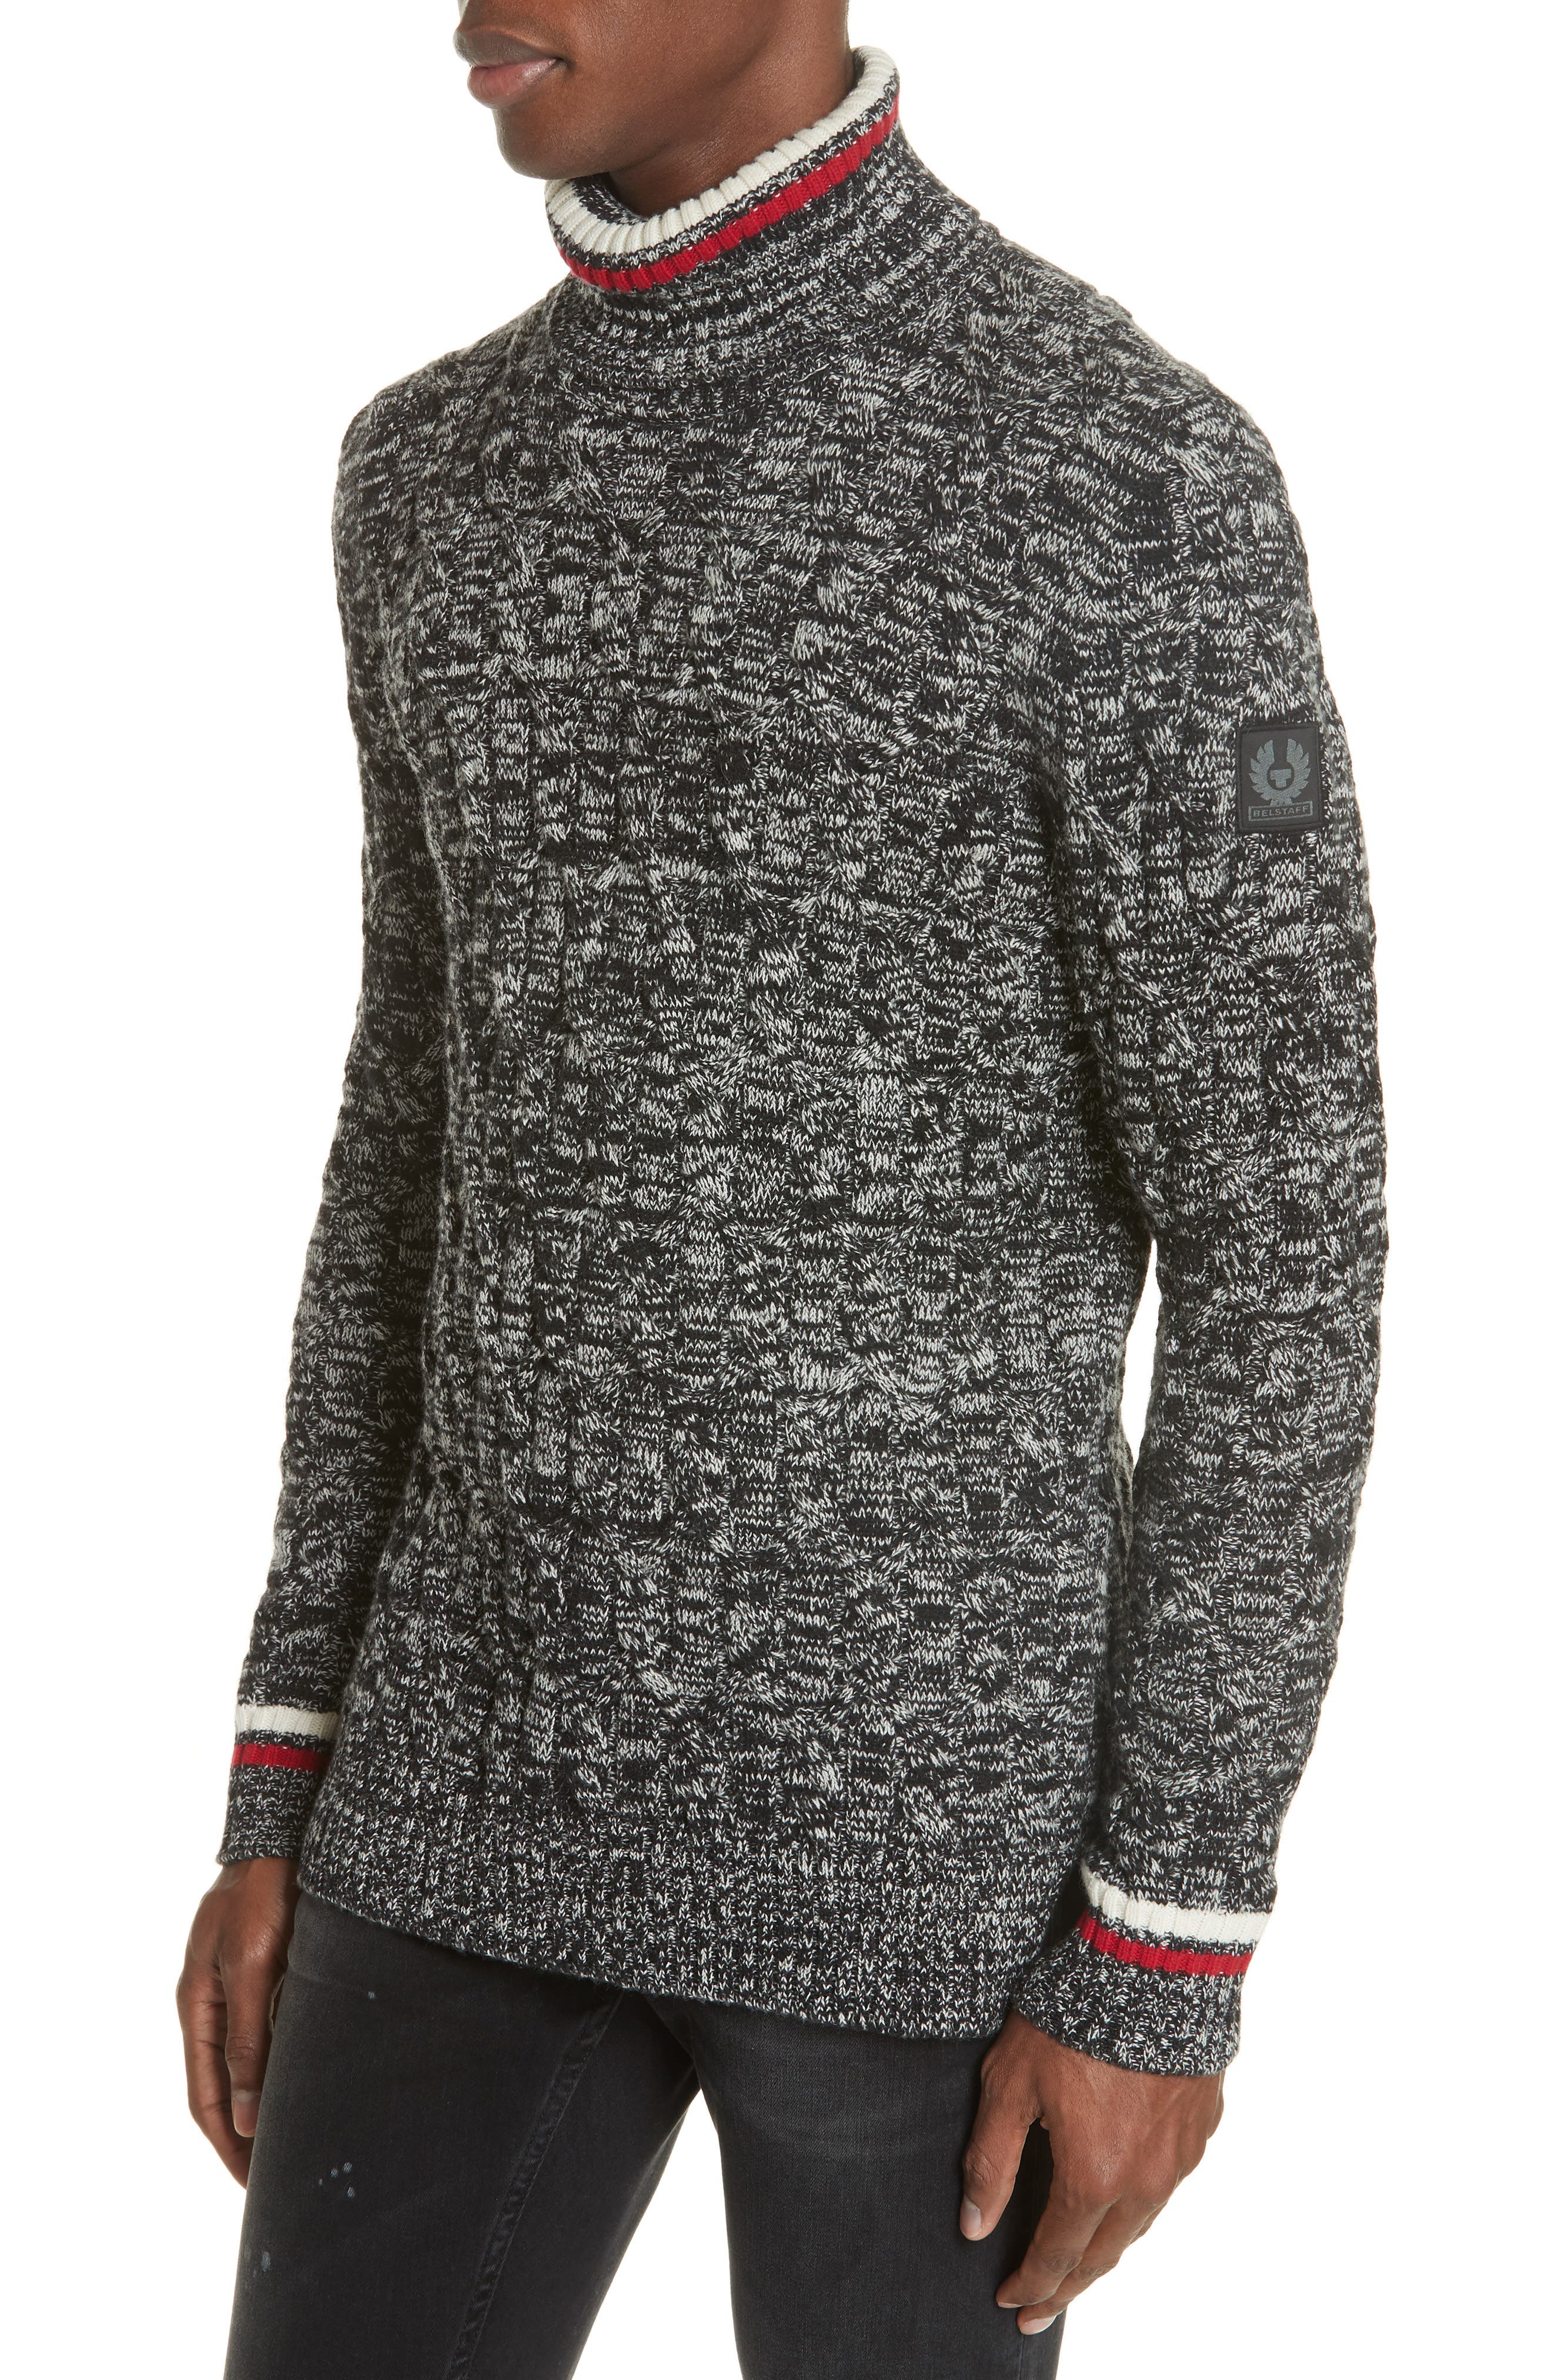 Howden Wool Turtleneck Sweater,                         Main,                         color, BLACK